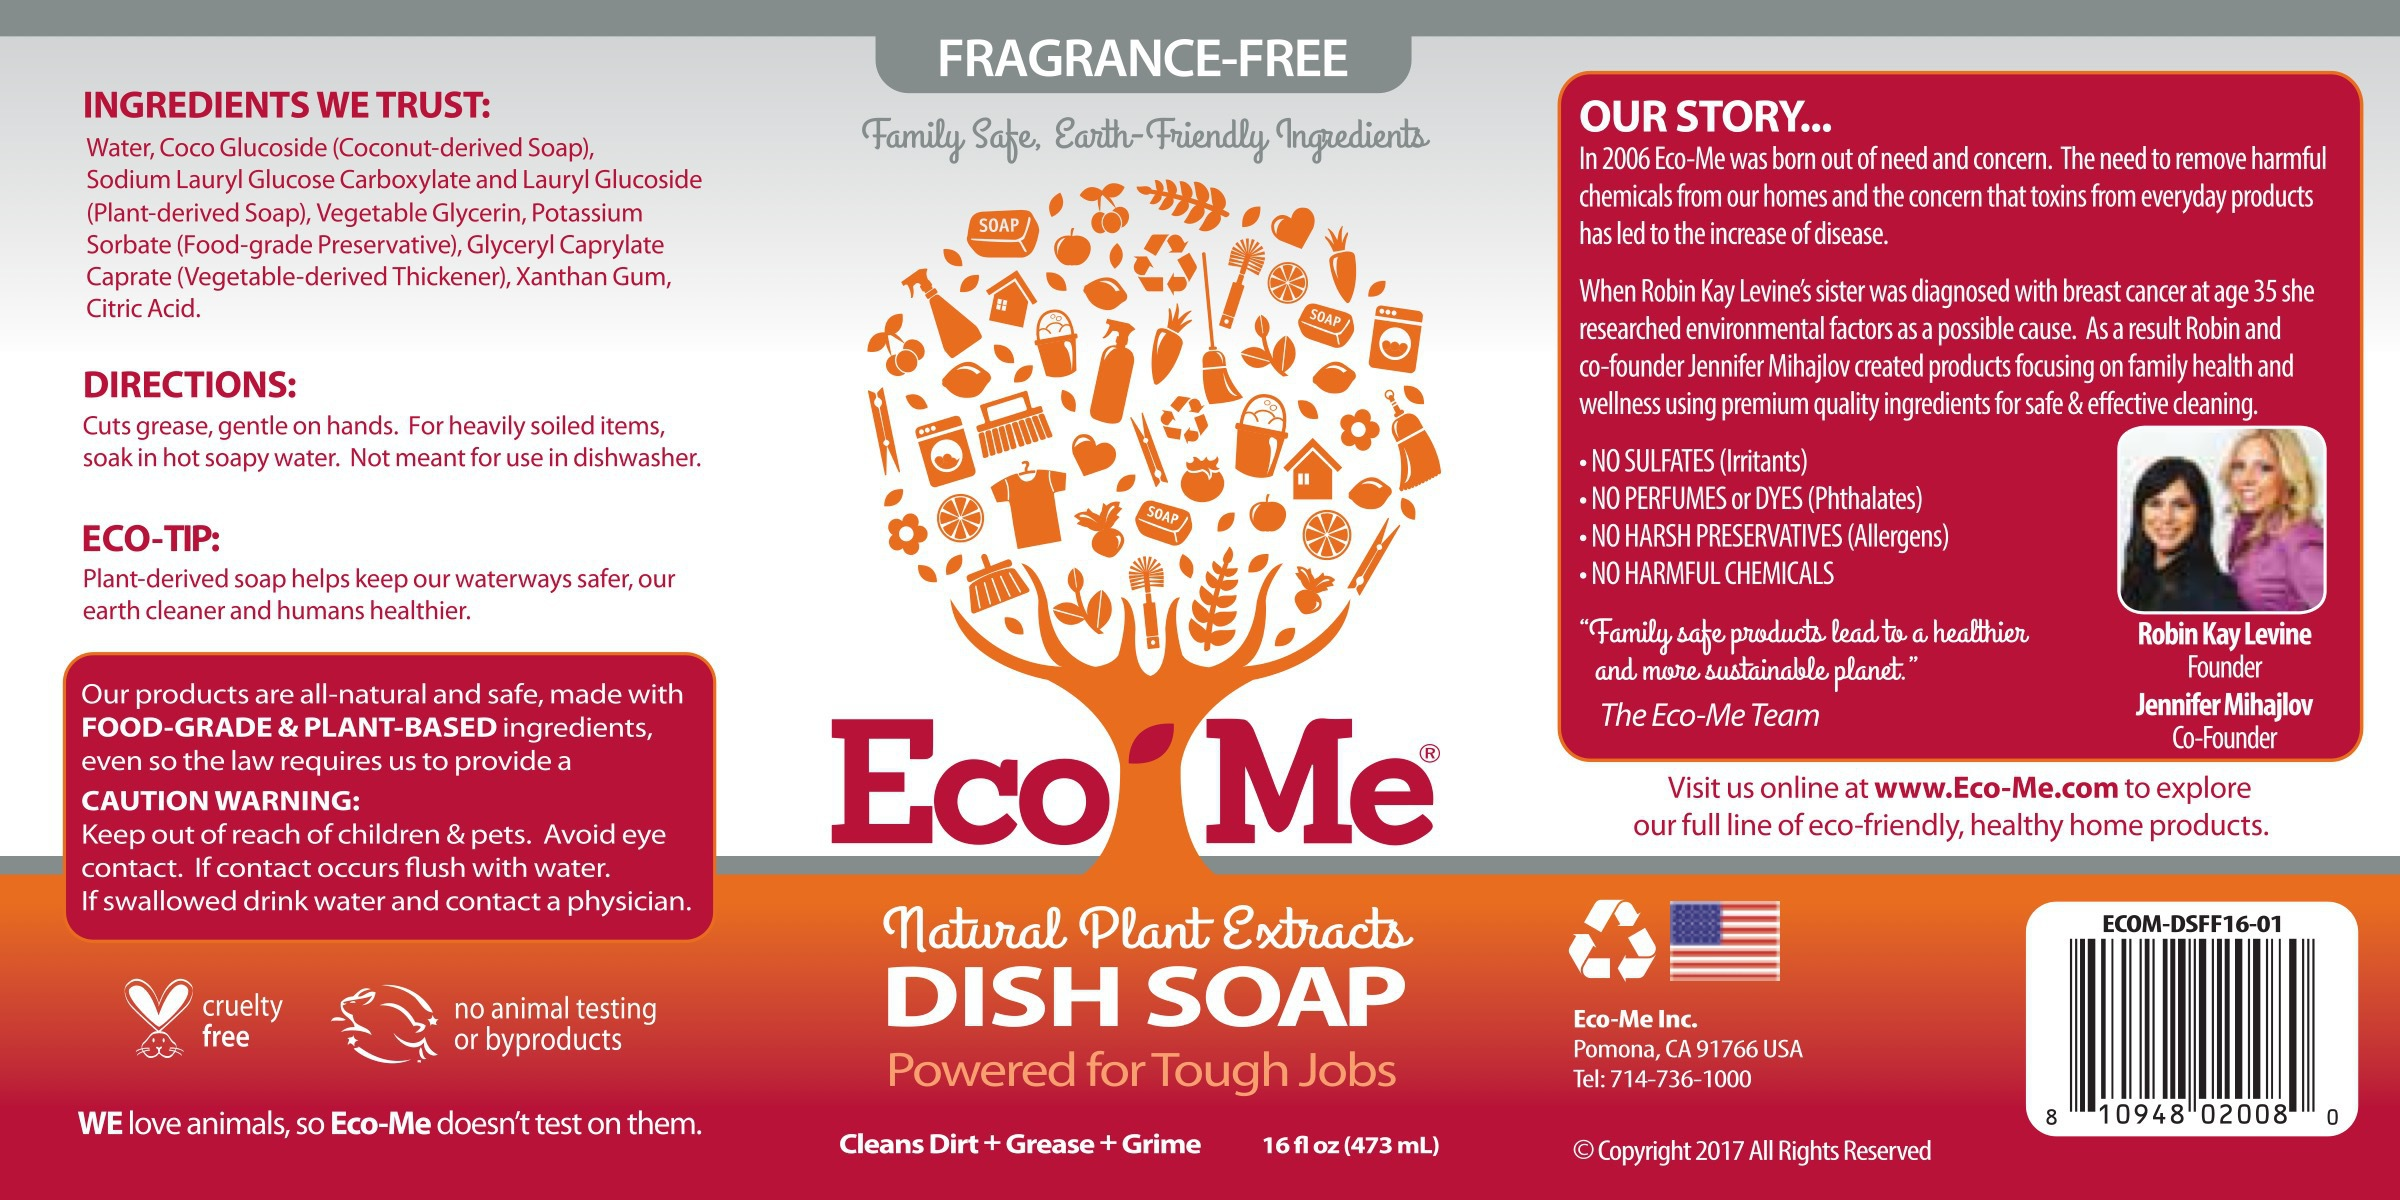 Natural Plant Extracts Dish Soap | The Natural Products